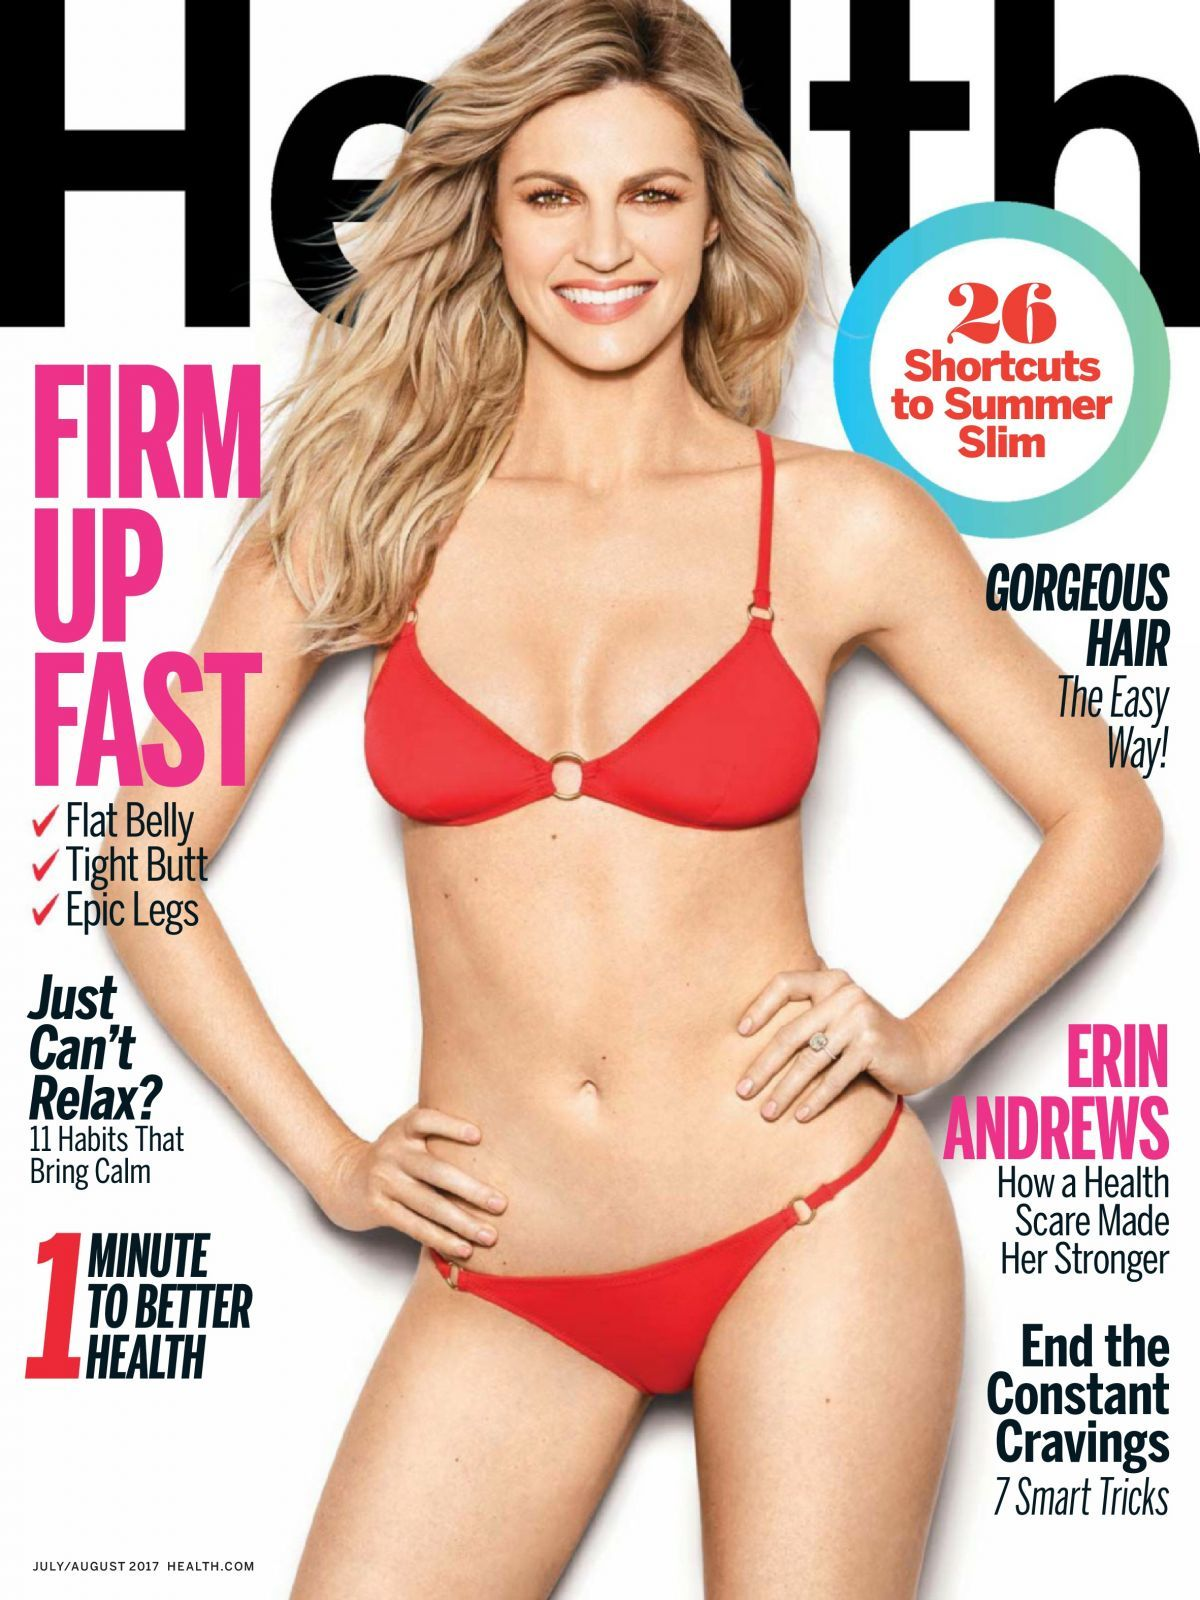 Erin Andrews' flaunting her hot body measurements in red bikini. The photo was featured in July/August 2017 issue of Health magazine